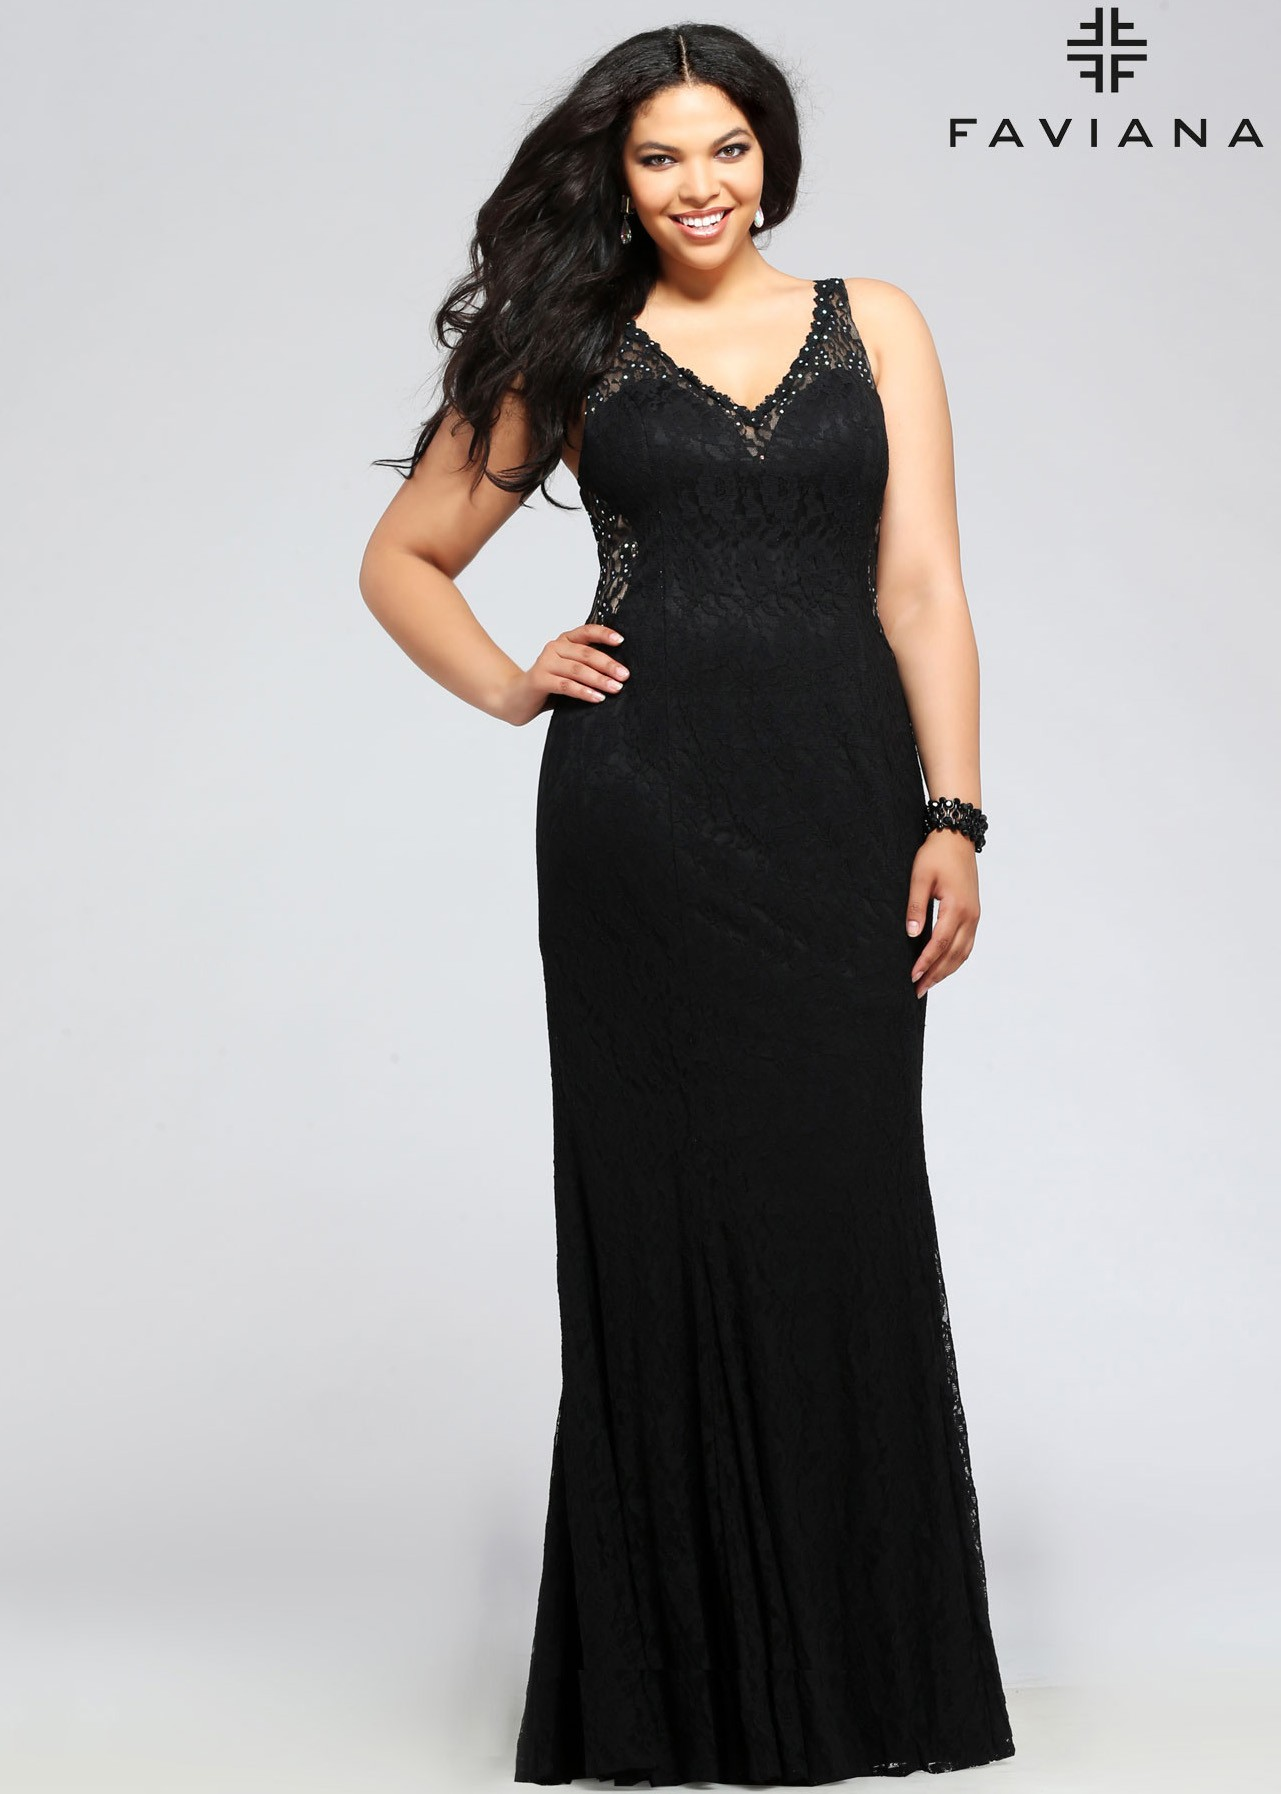 Faviana 9386 Black V-Neck Lace Plus Size Evening Dress